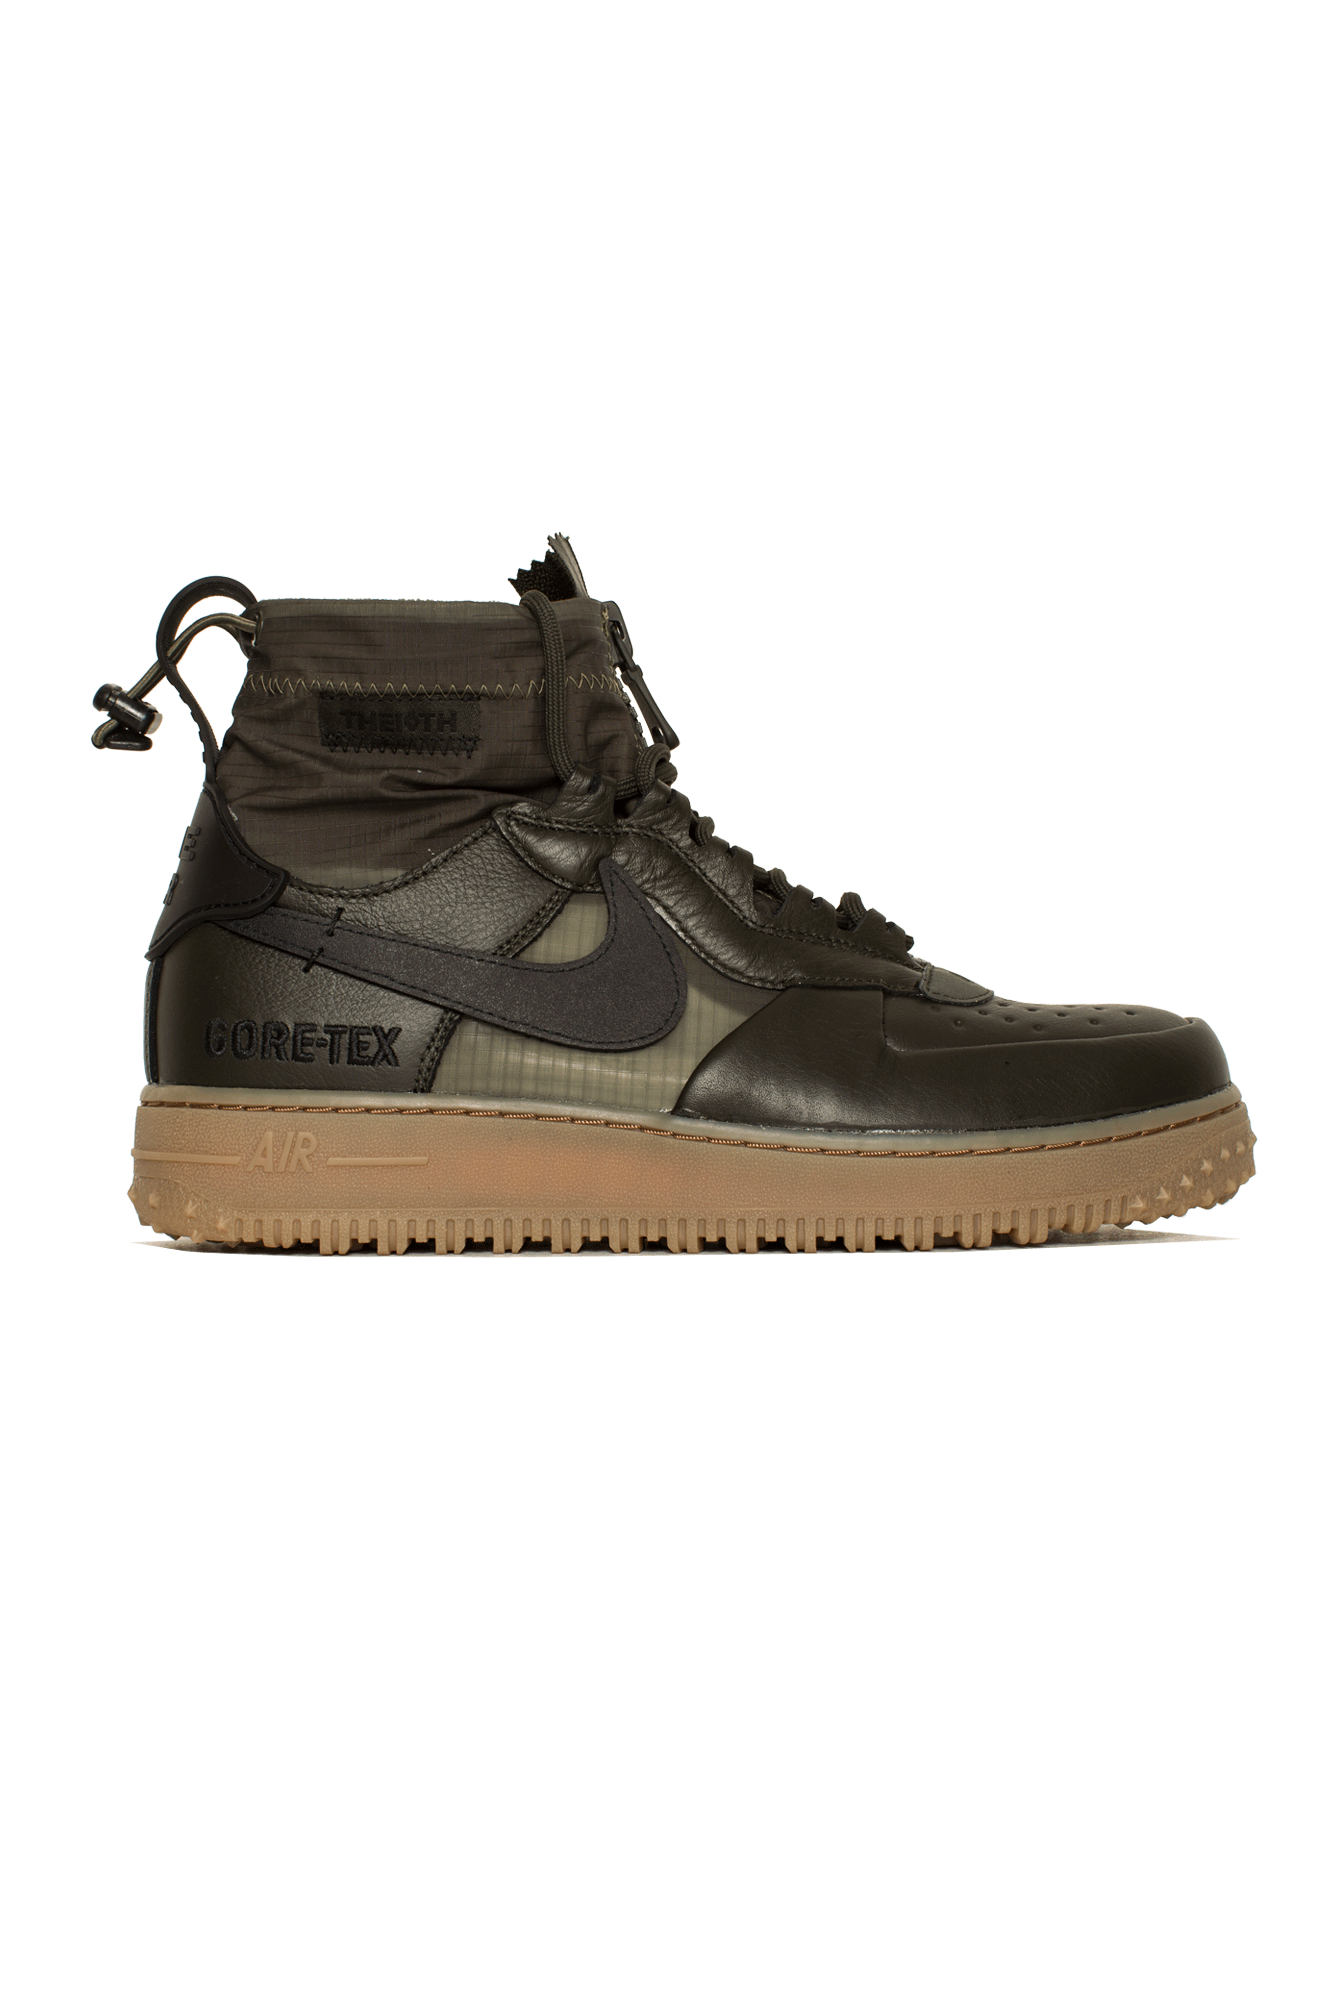 Nike Sneakers Air Force 1 Winter Gore-Tex Green CQ7211-#000#300#7 - One Block Down